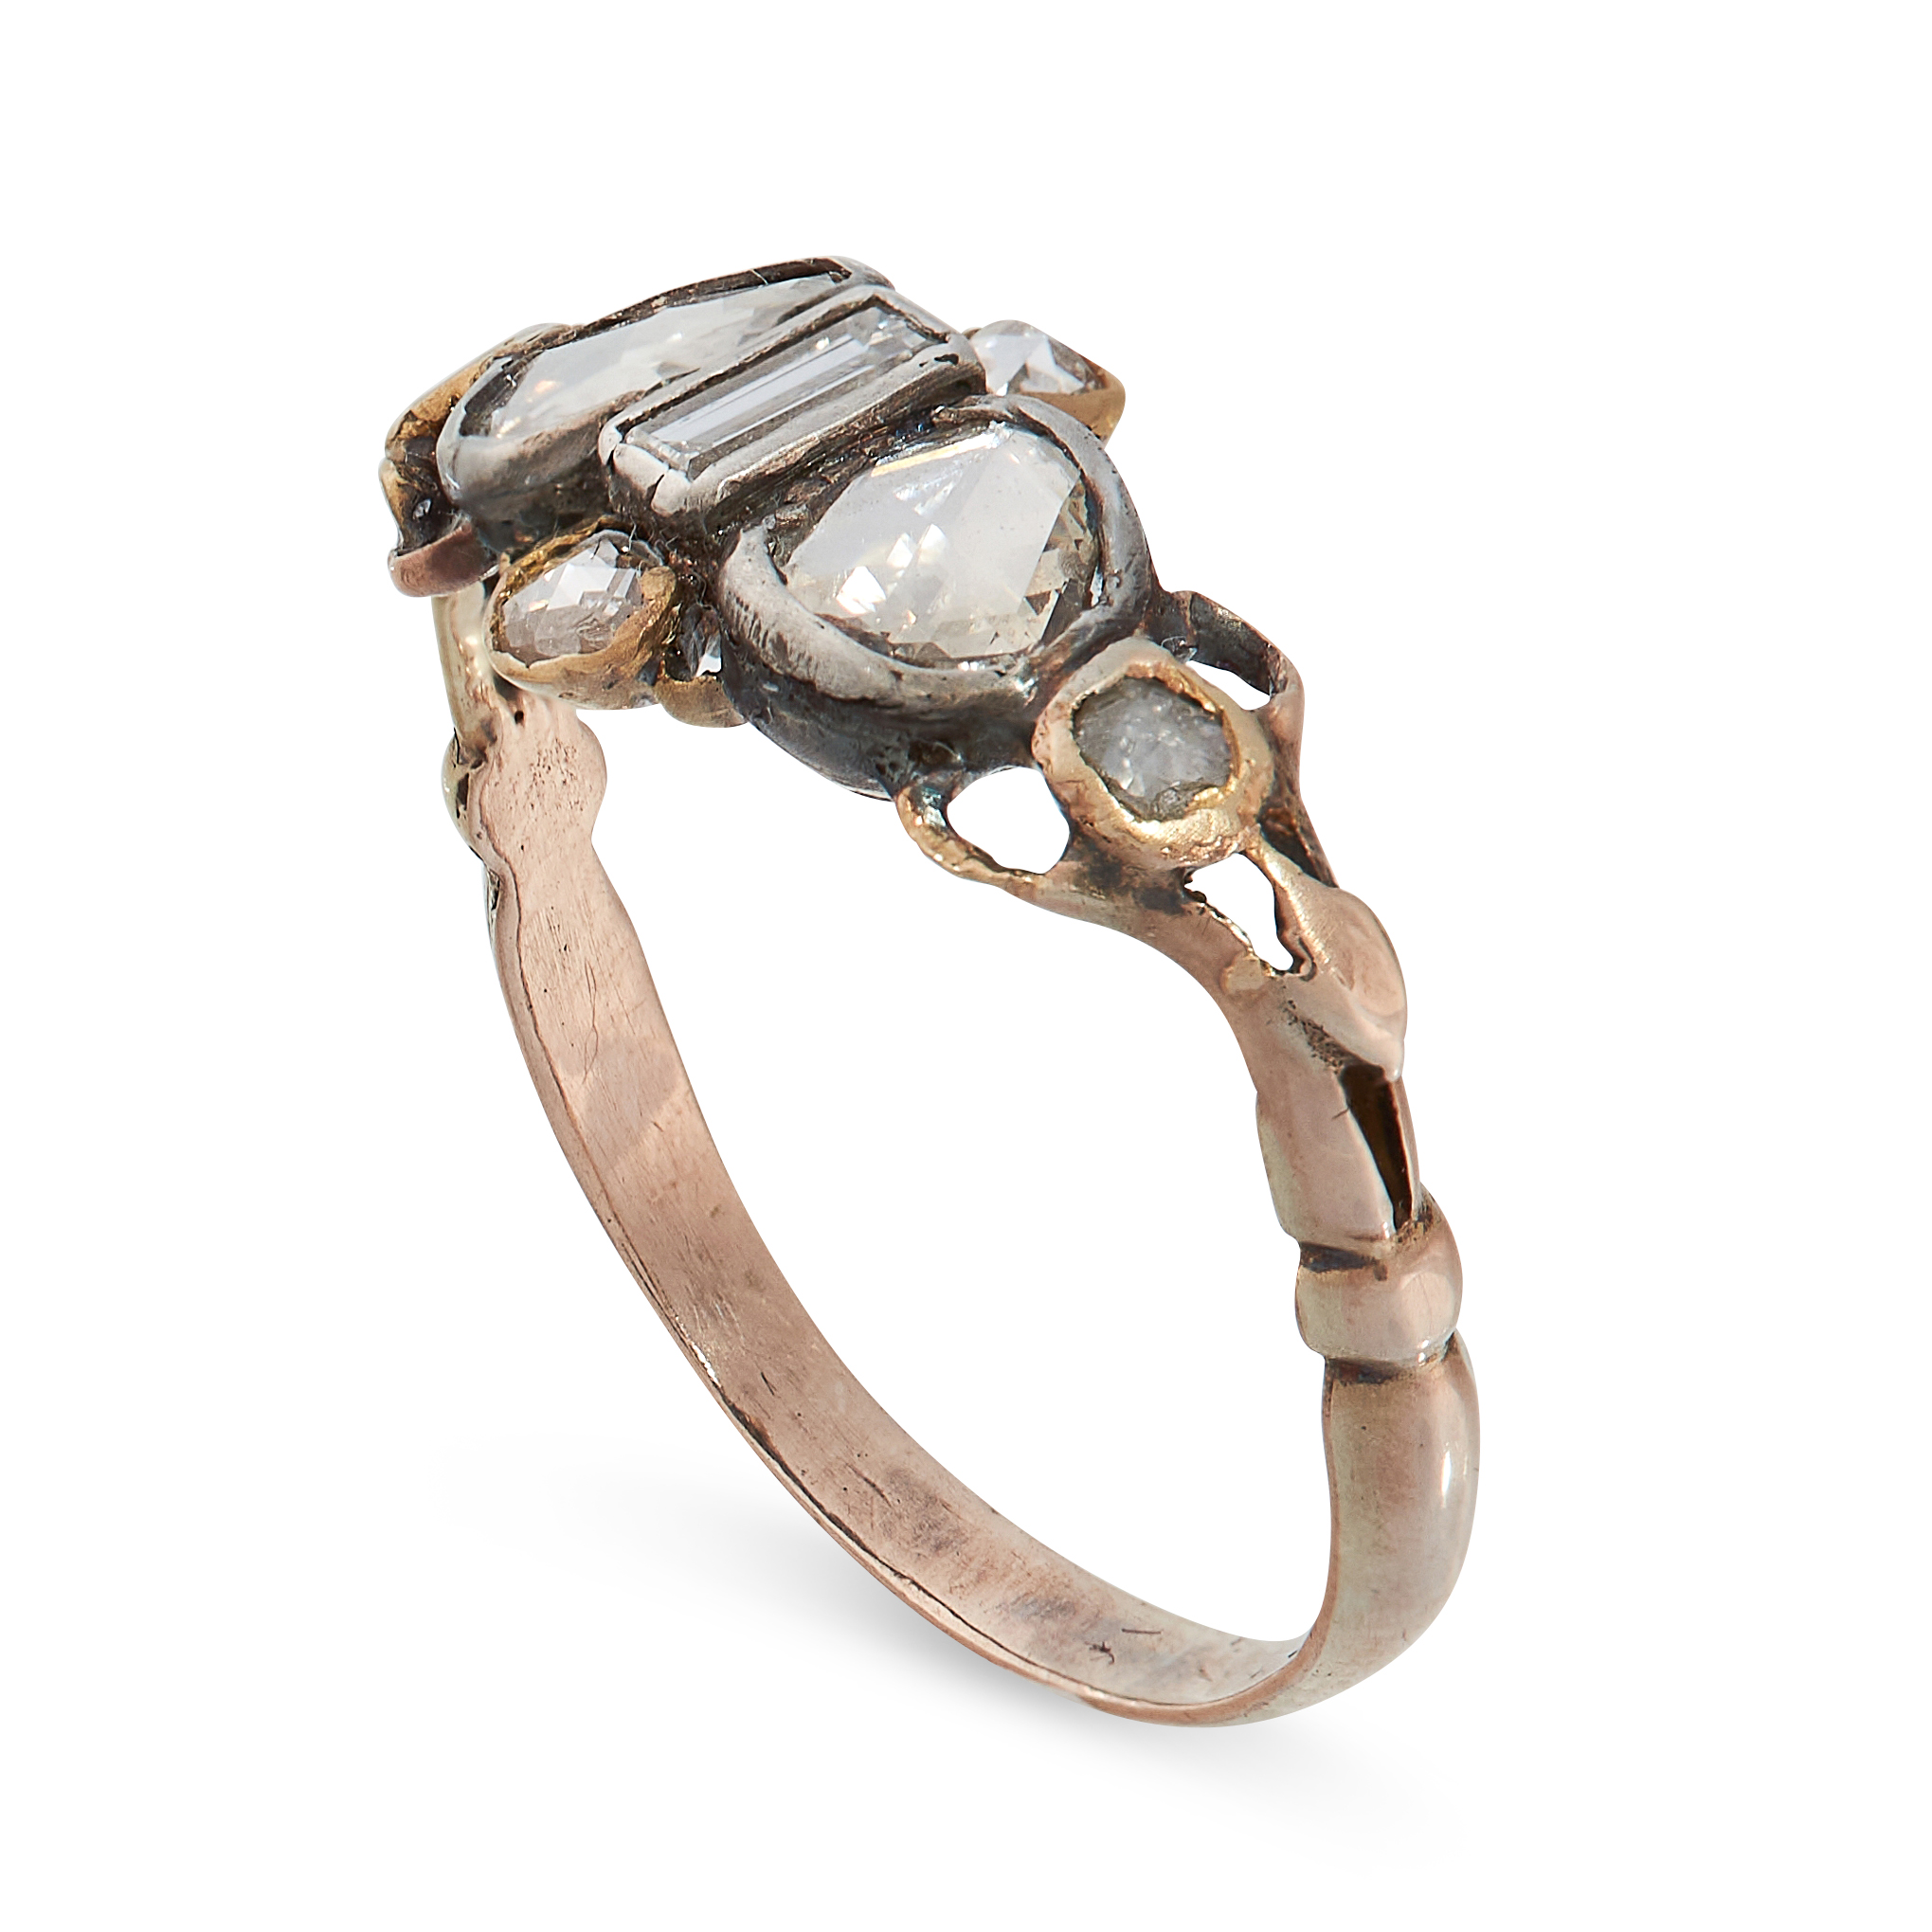 ANTIQUE DIAMOND AND ENAMEL RING in yellow gold and silver, set with a central baguette cut diamond - Image 2 of 2